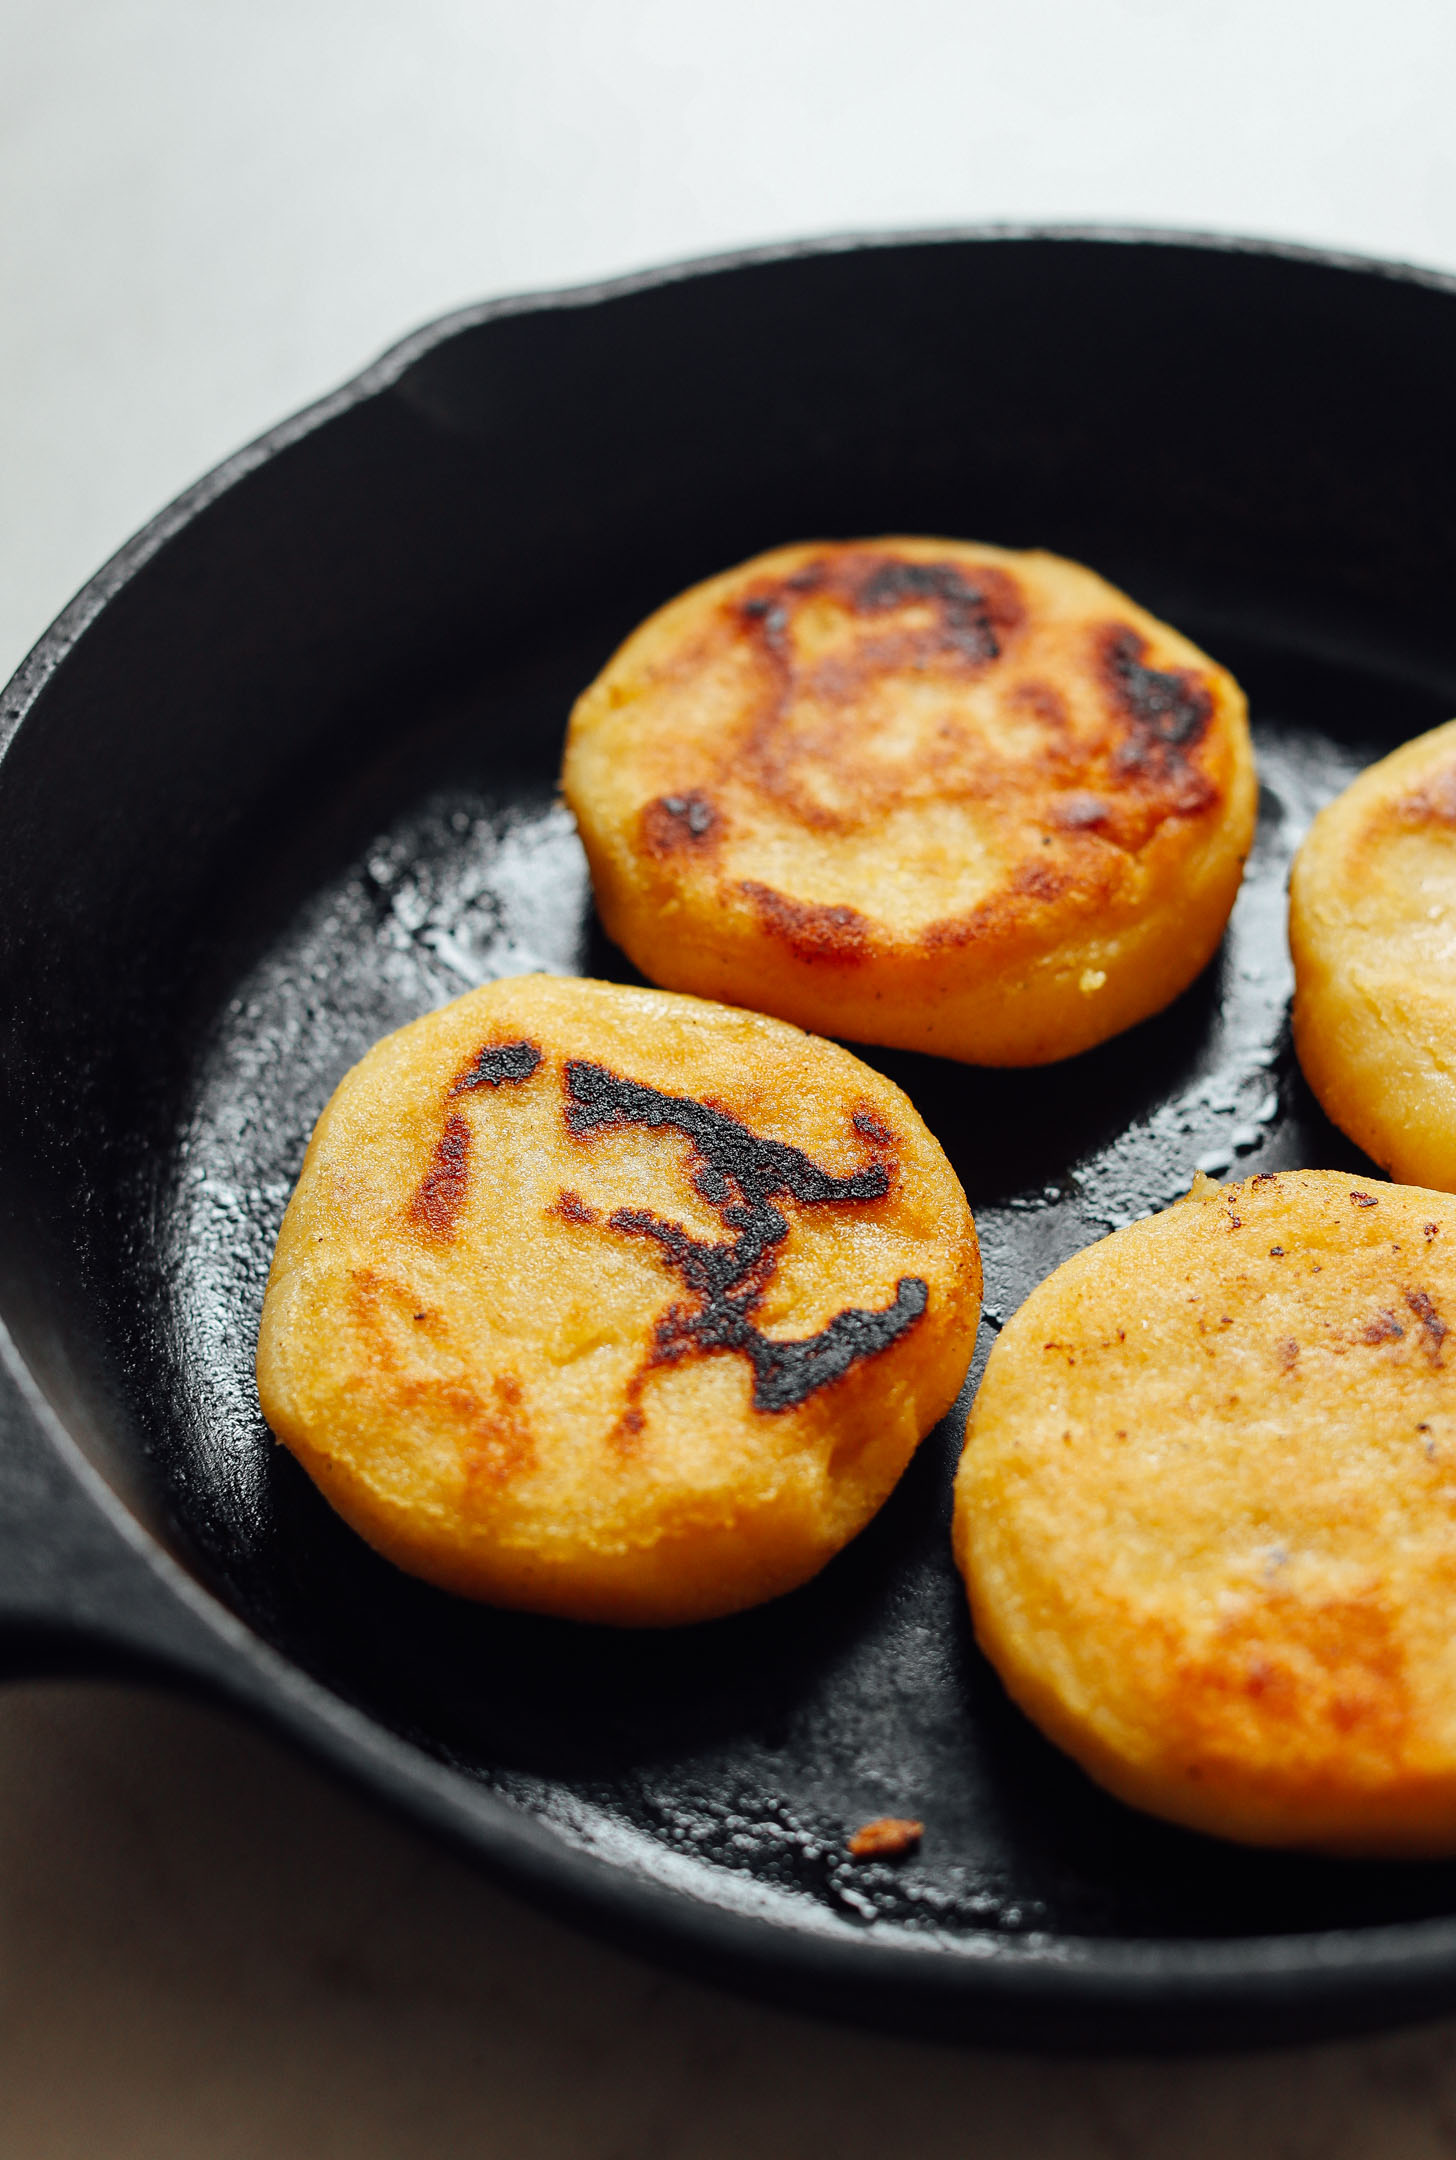 How to Make Arepas (3 Ingredients!)